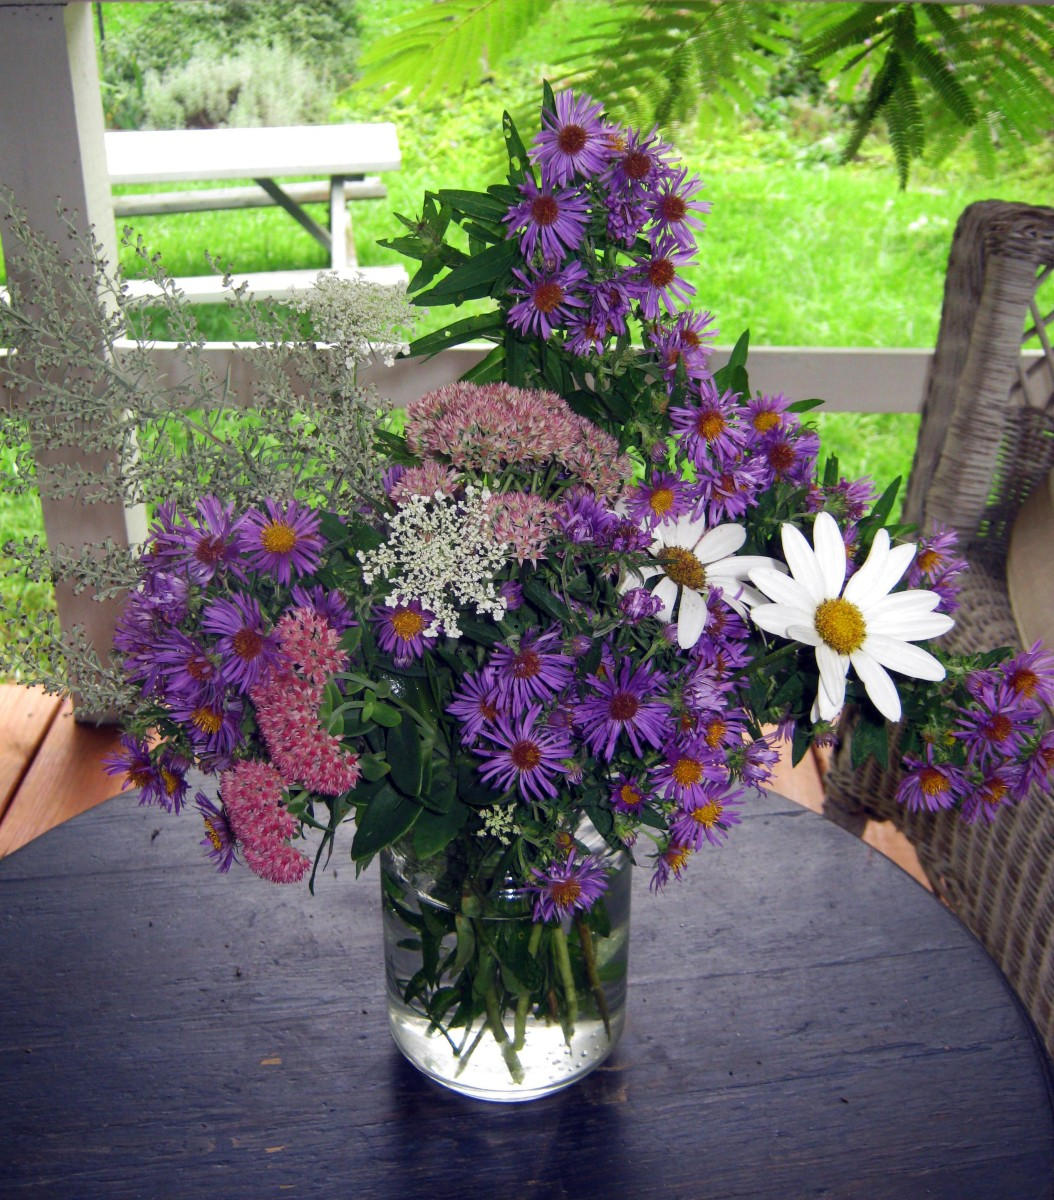 Fall Flowers - Late Blooming Perennials and Shrubs